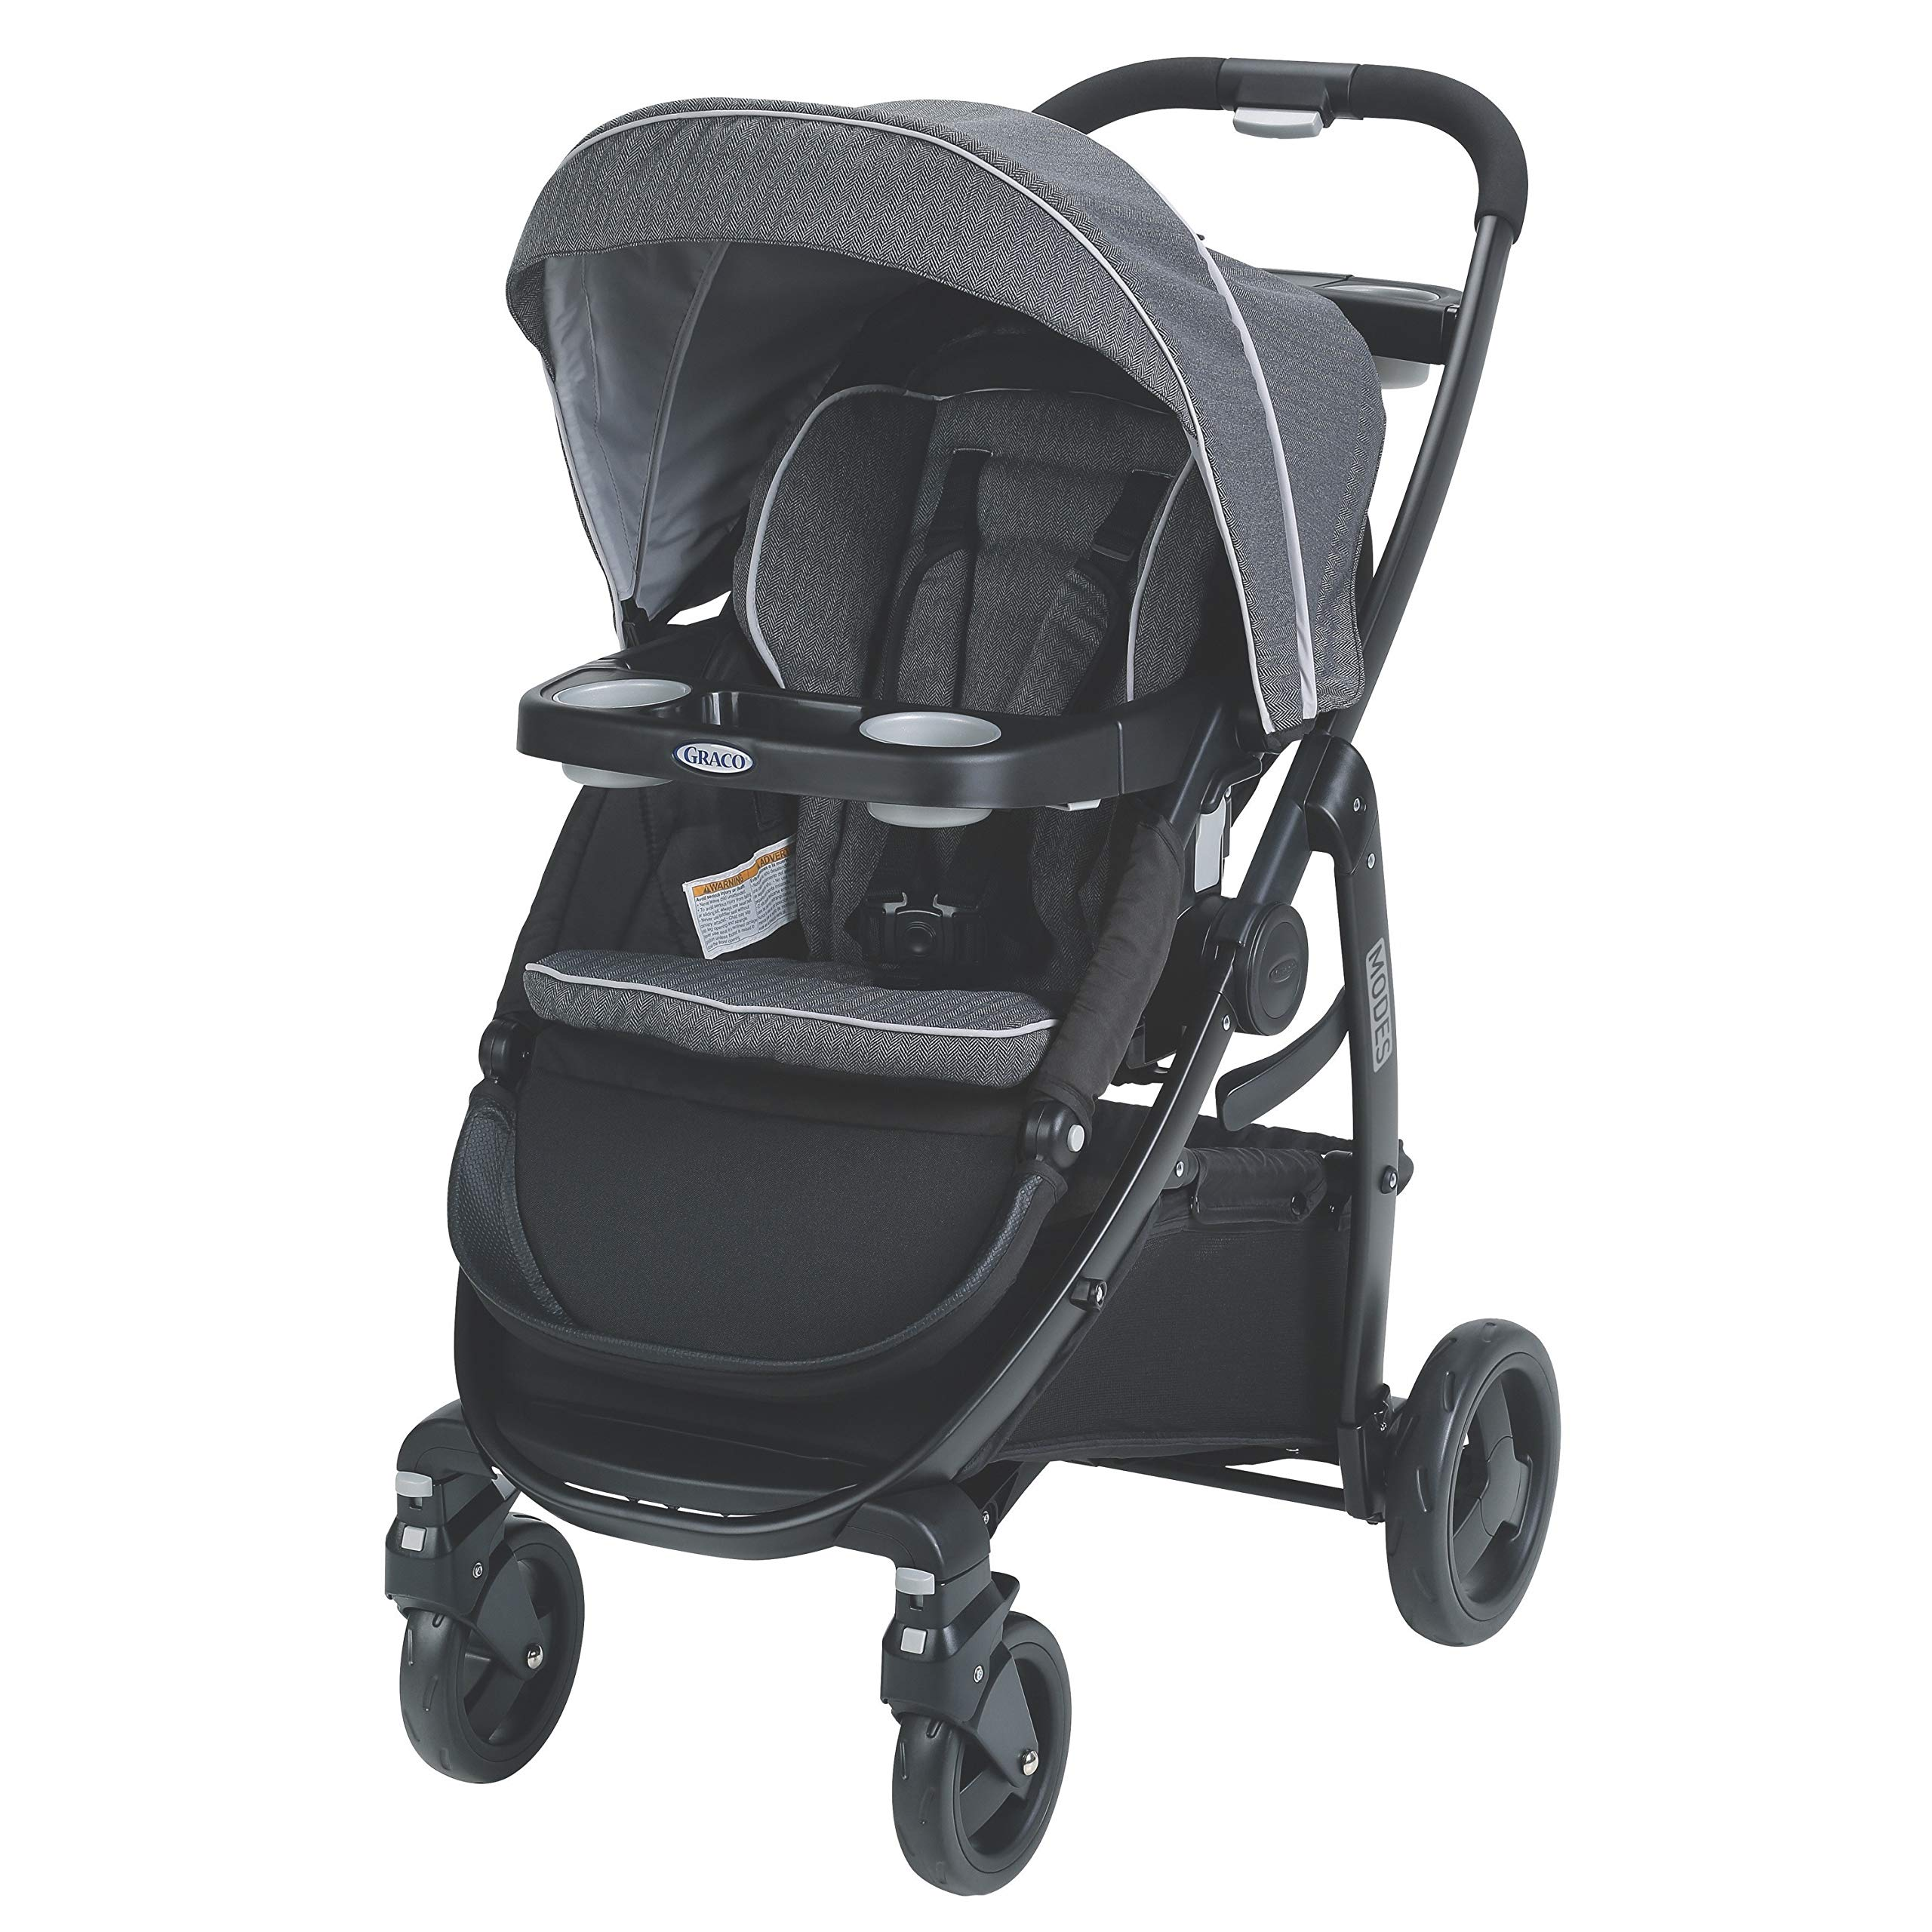 Graco Modes Stroller, Includes Reversible Seat, Grayson by Graco